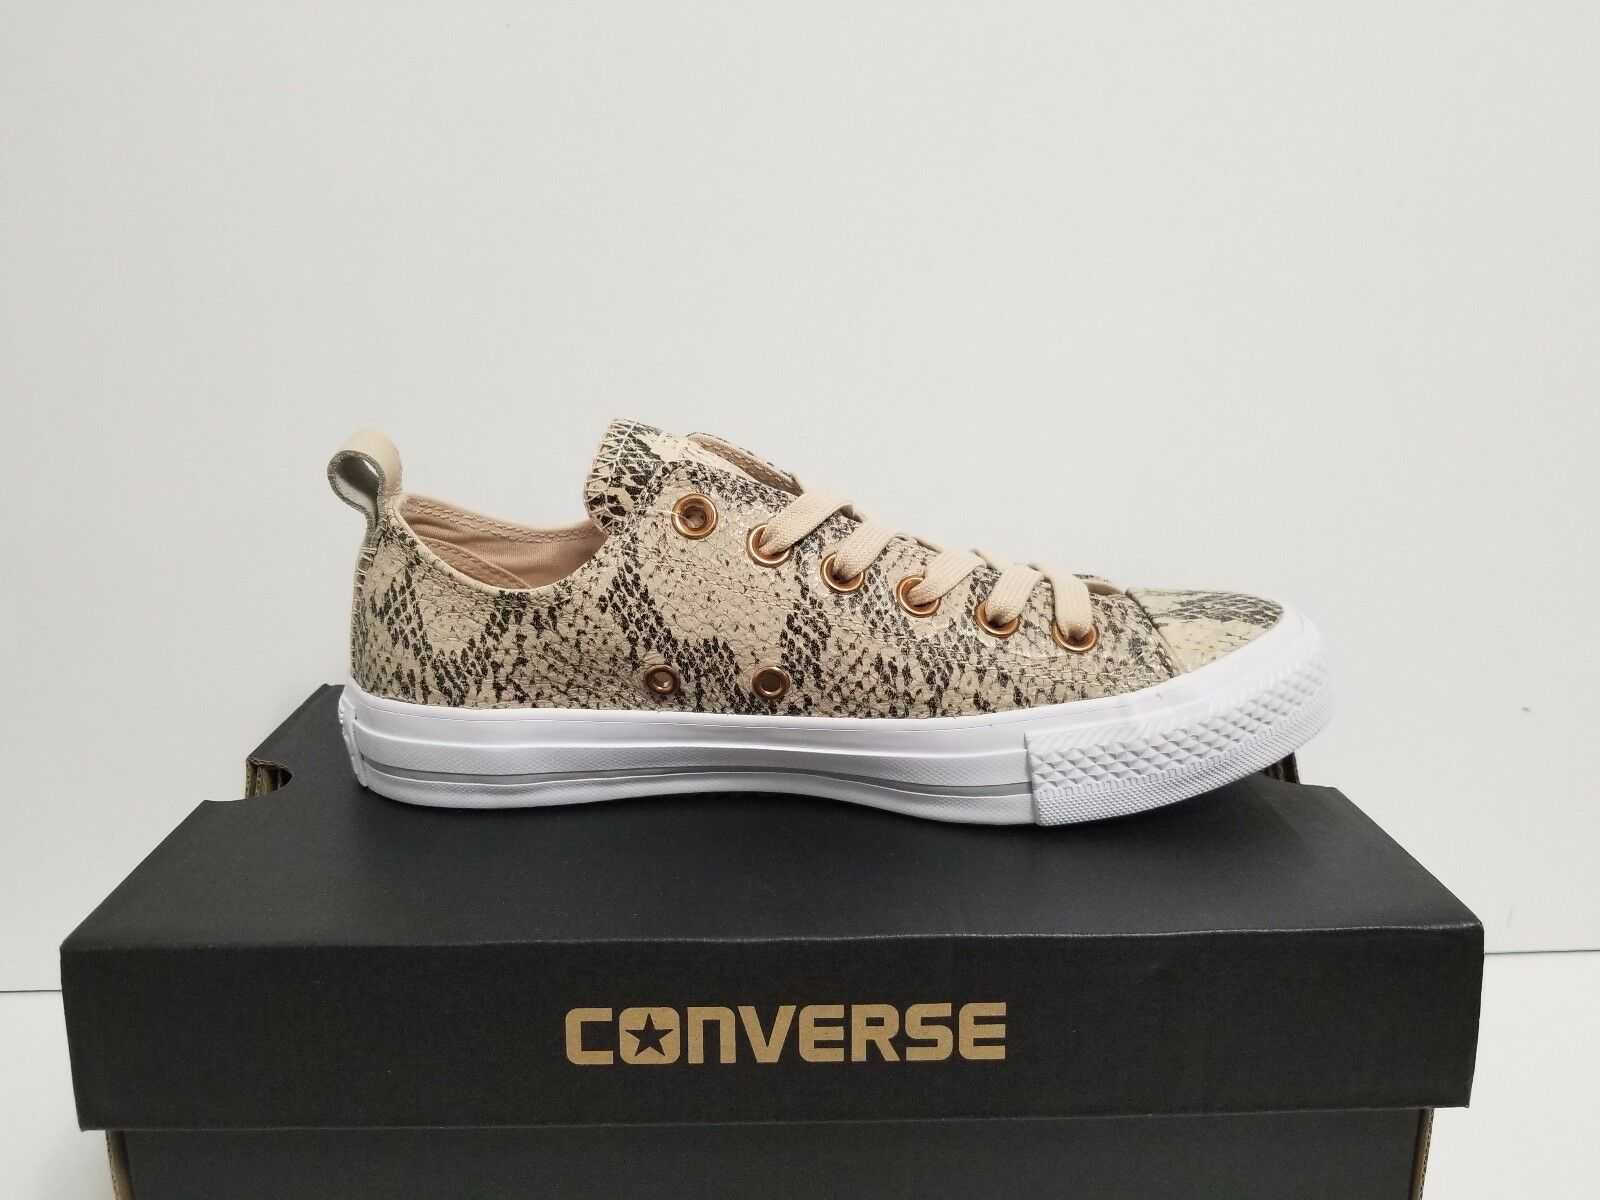 WMNS CONVERSE OX CHUCK TAYLOR ALL STAR LOOP OX CONVERSE IVORY CREAM/WEISS/DOLPHIN 555213C 3e0268